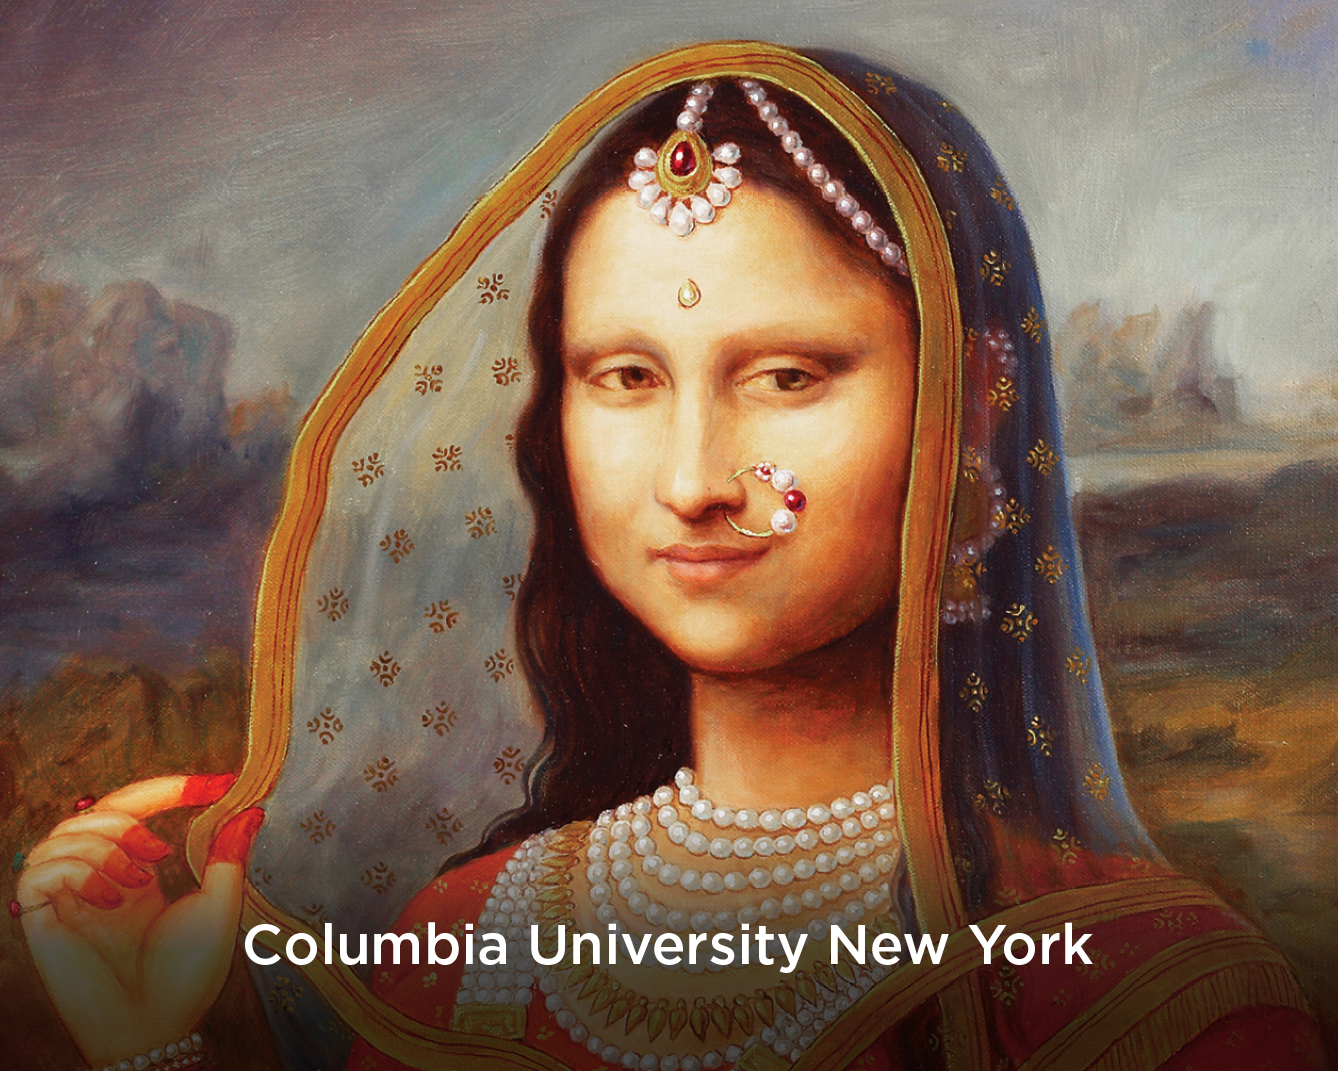 Edited version of the Mona Lisa in Indian garb